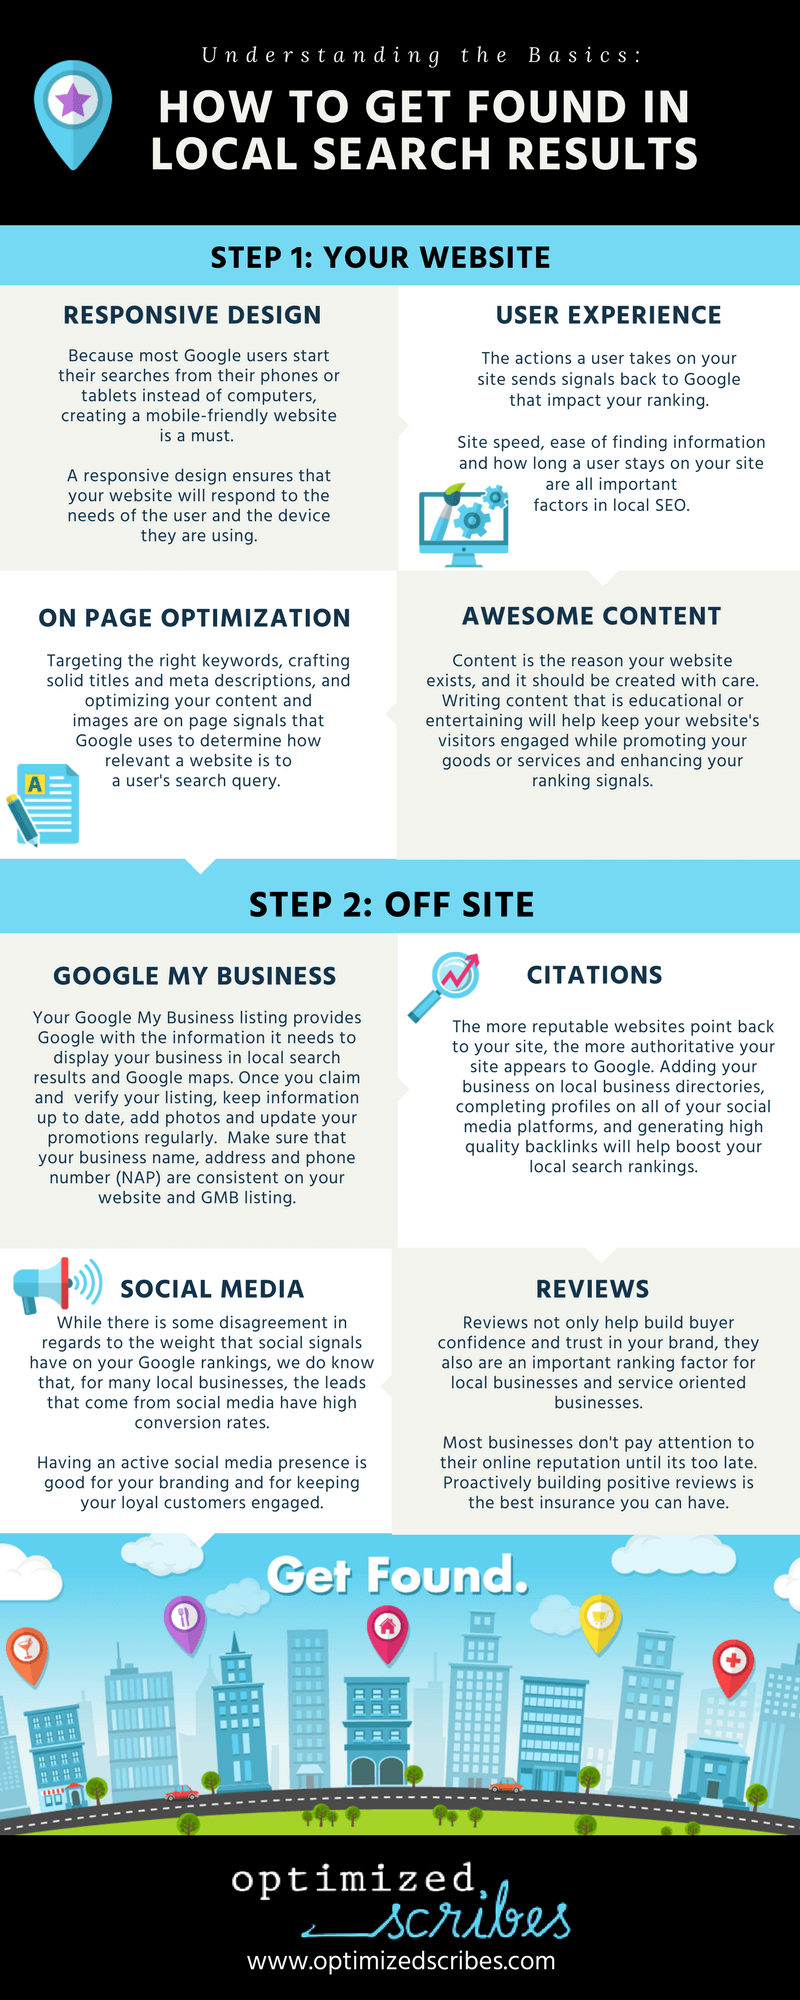 OS-Infographic-Local-SEO